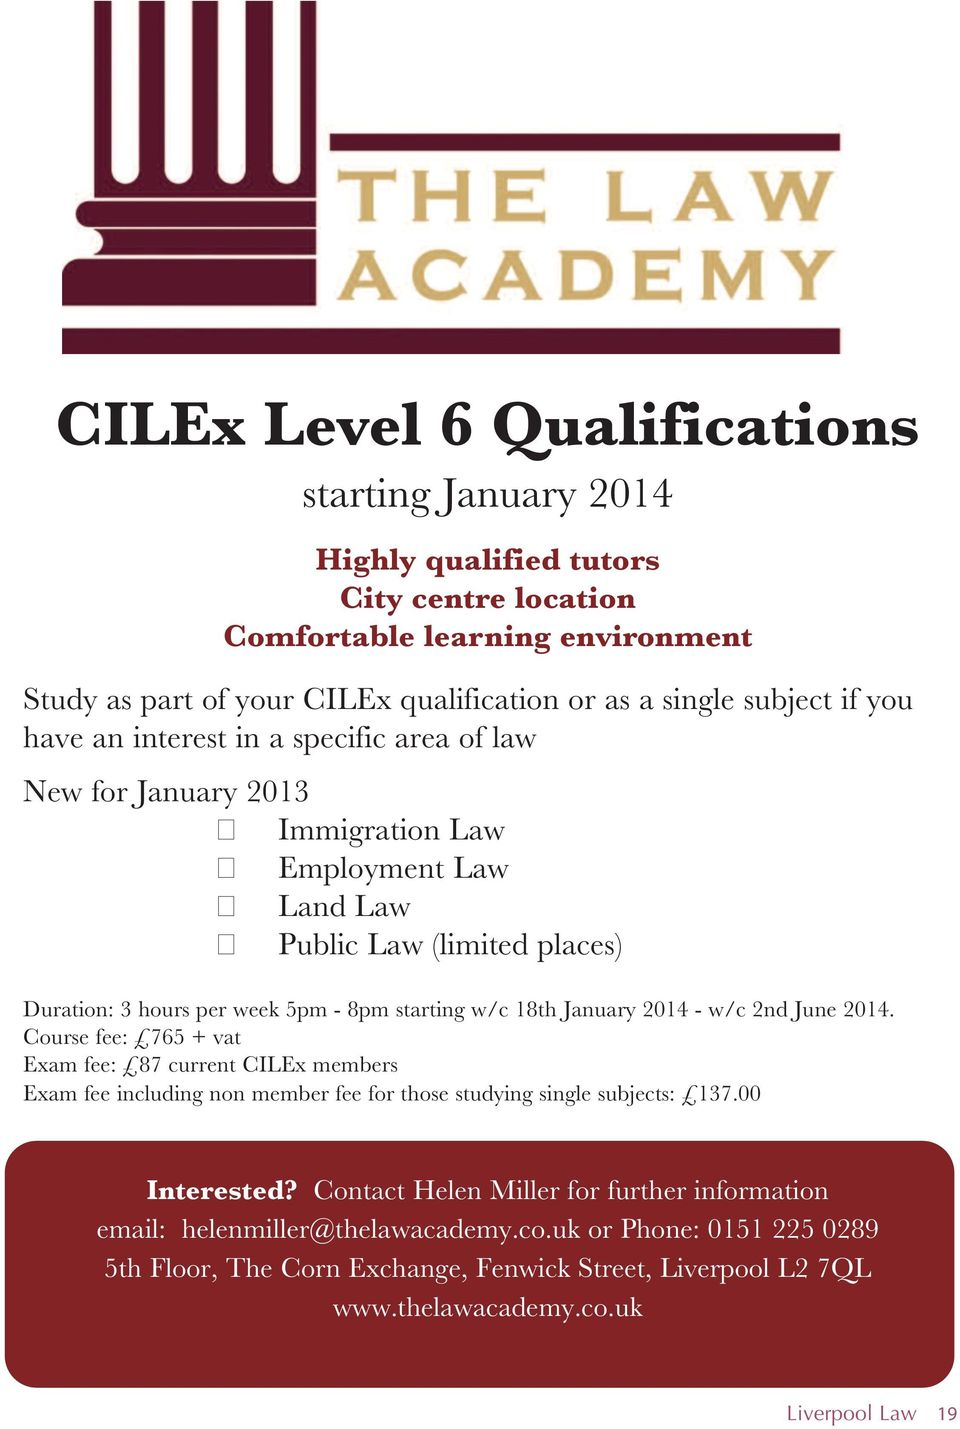 January 2014 - w/c 2nd June 2014. Course fee: 765 + vat Exam fee: 87 current CILEx members Exam fee including non member fee for those studying single subjects: 137.00 Interested?